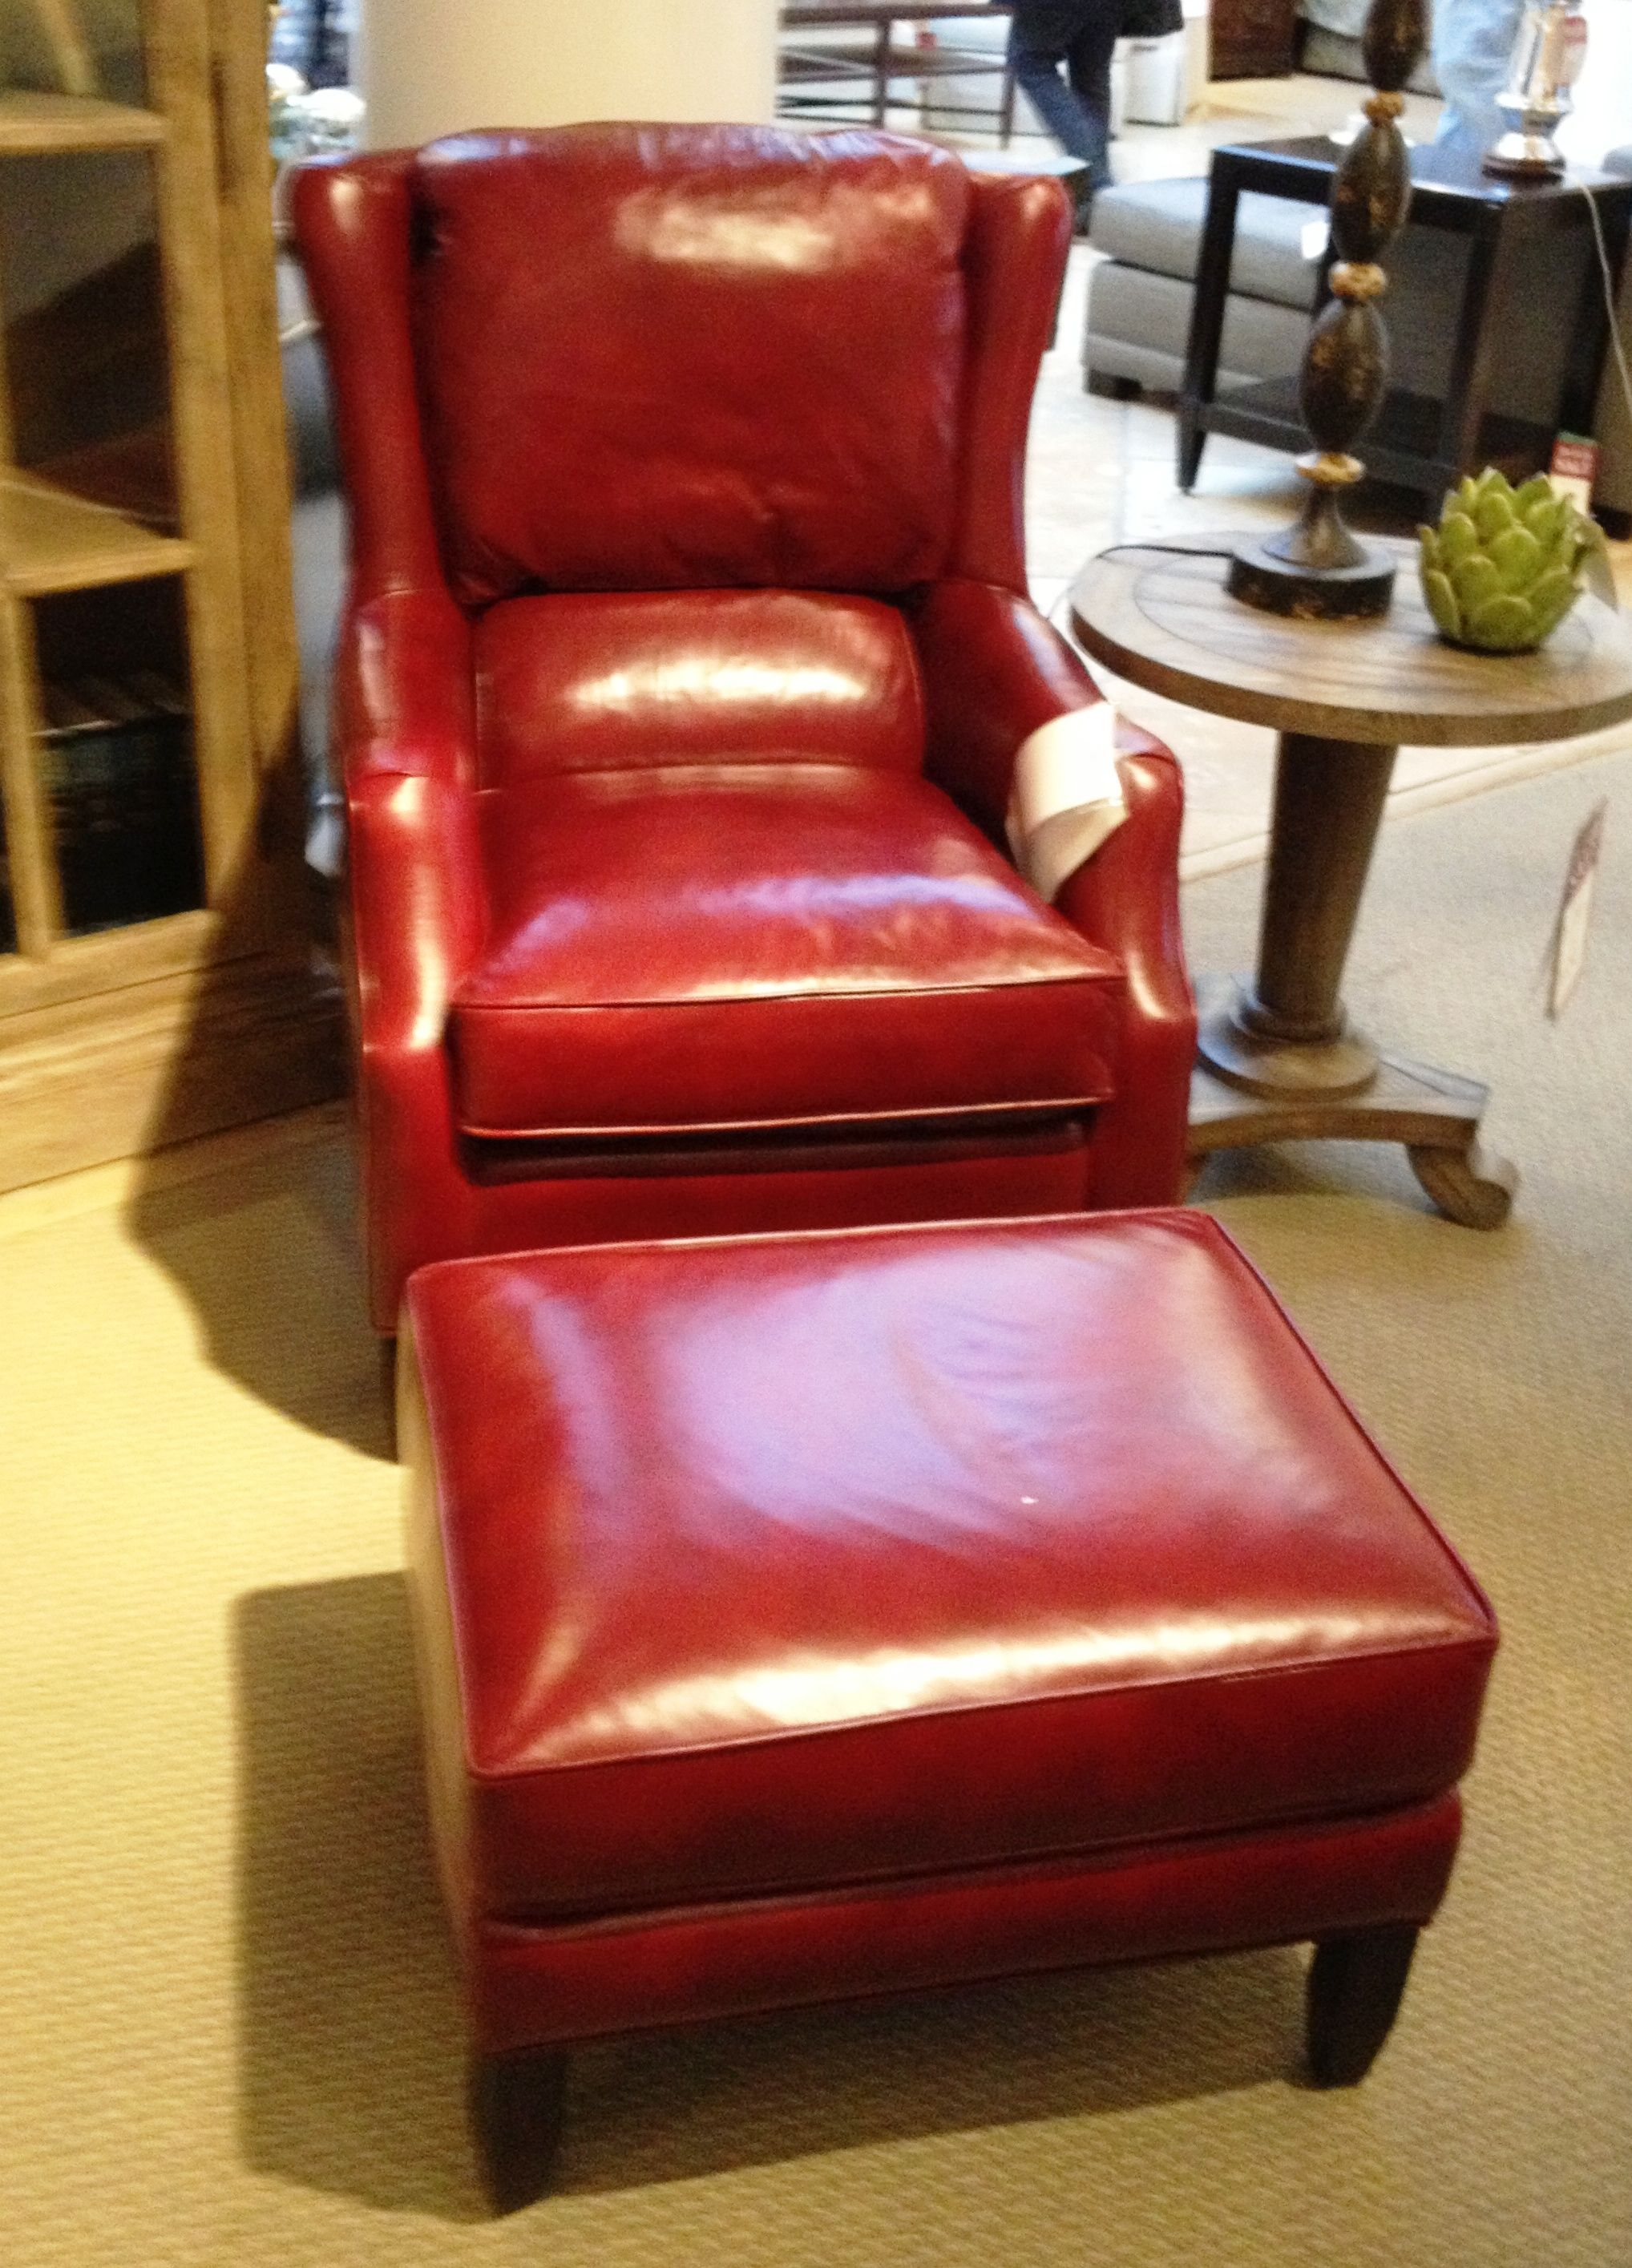 Tremendous King Hickory Red Leather Chair Ottoman Home Pinterest Machost Co Dining Chair Design Ideas Machostcouk